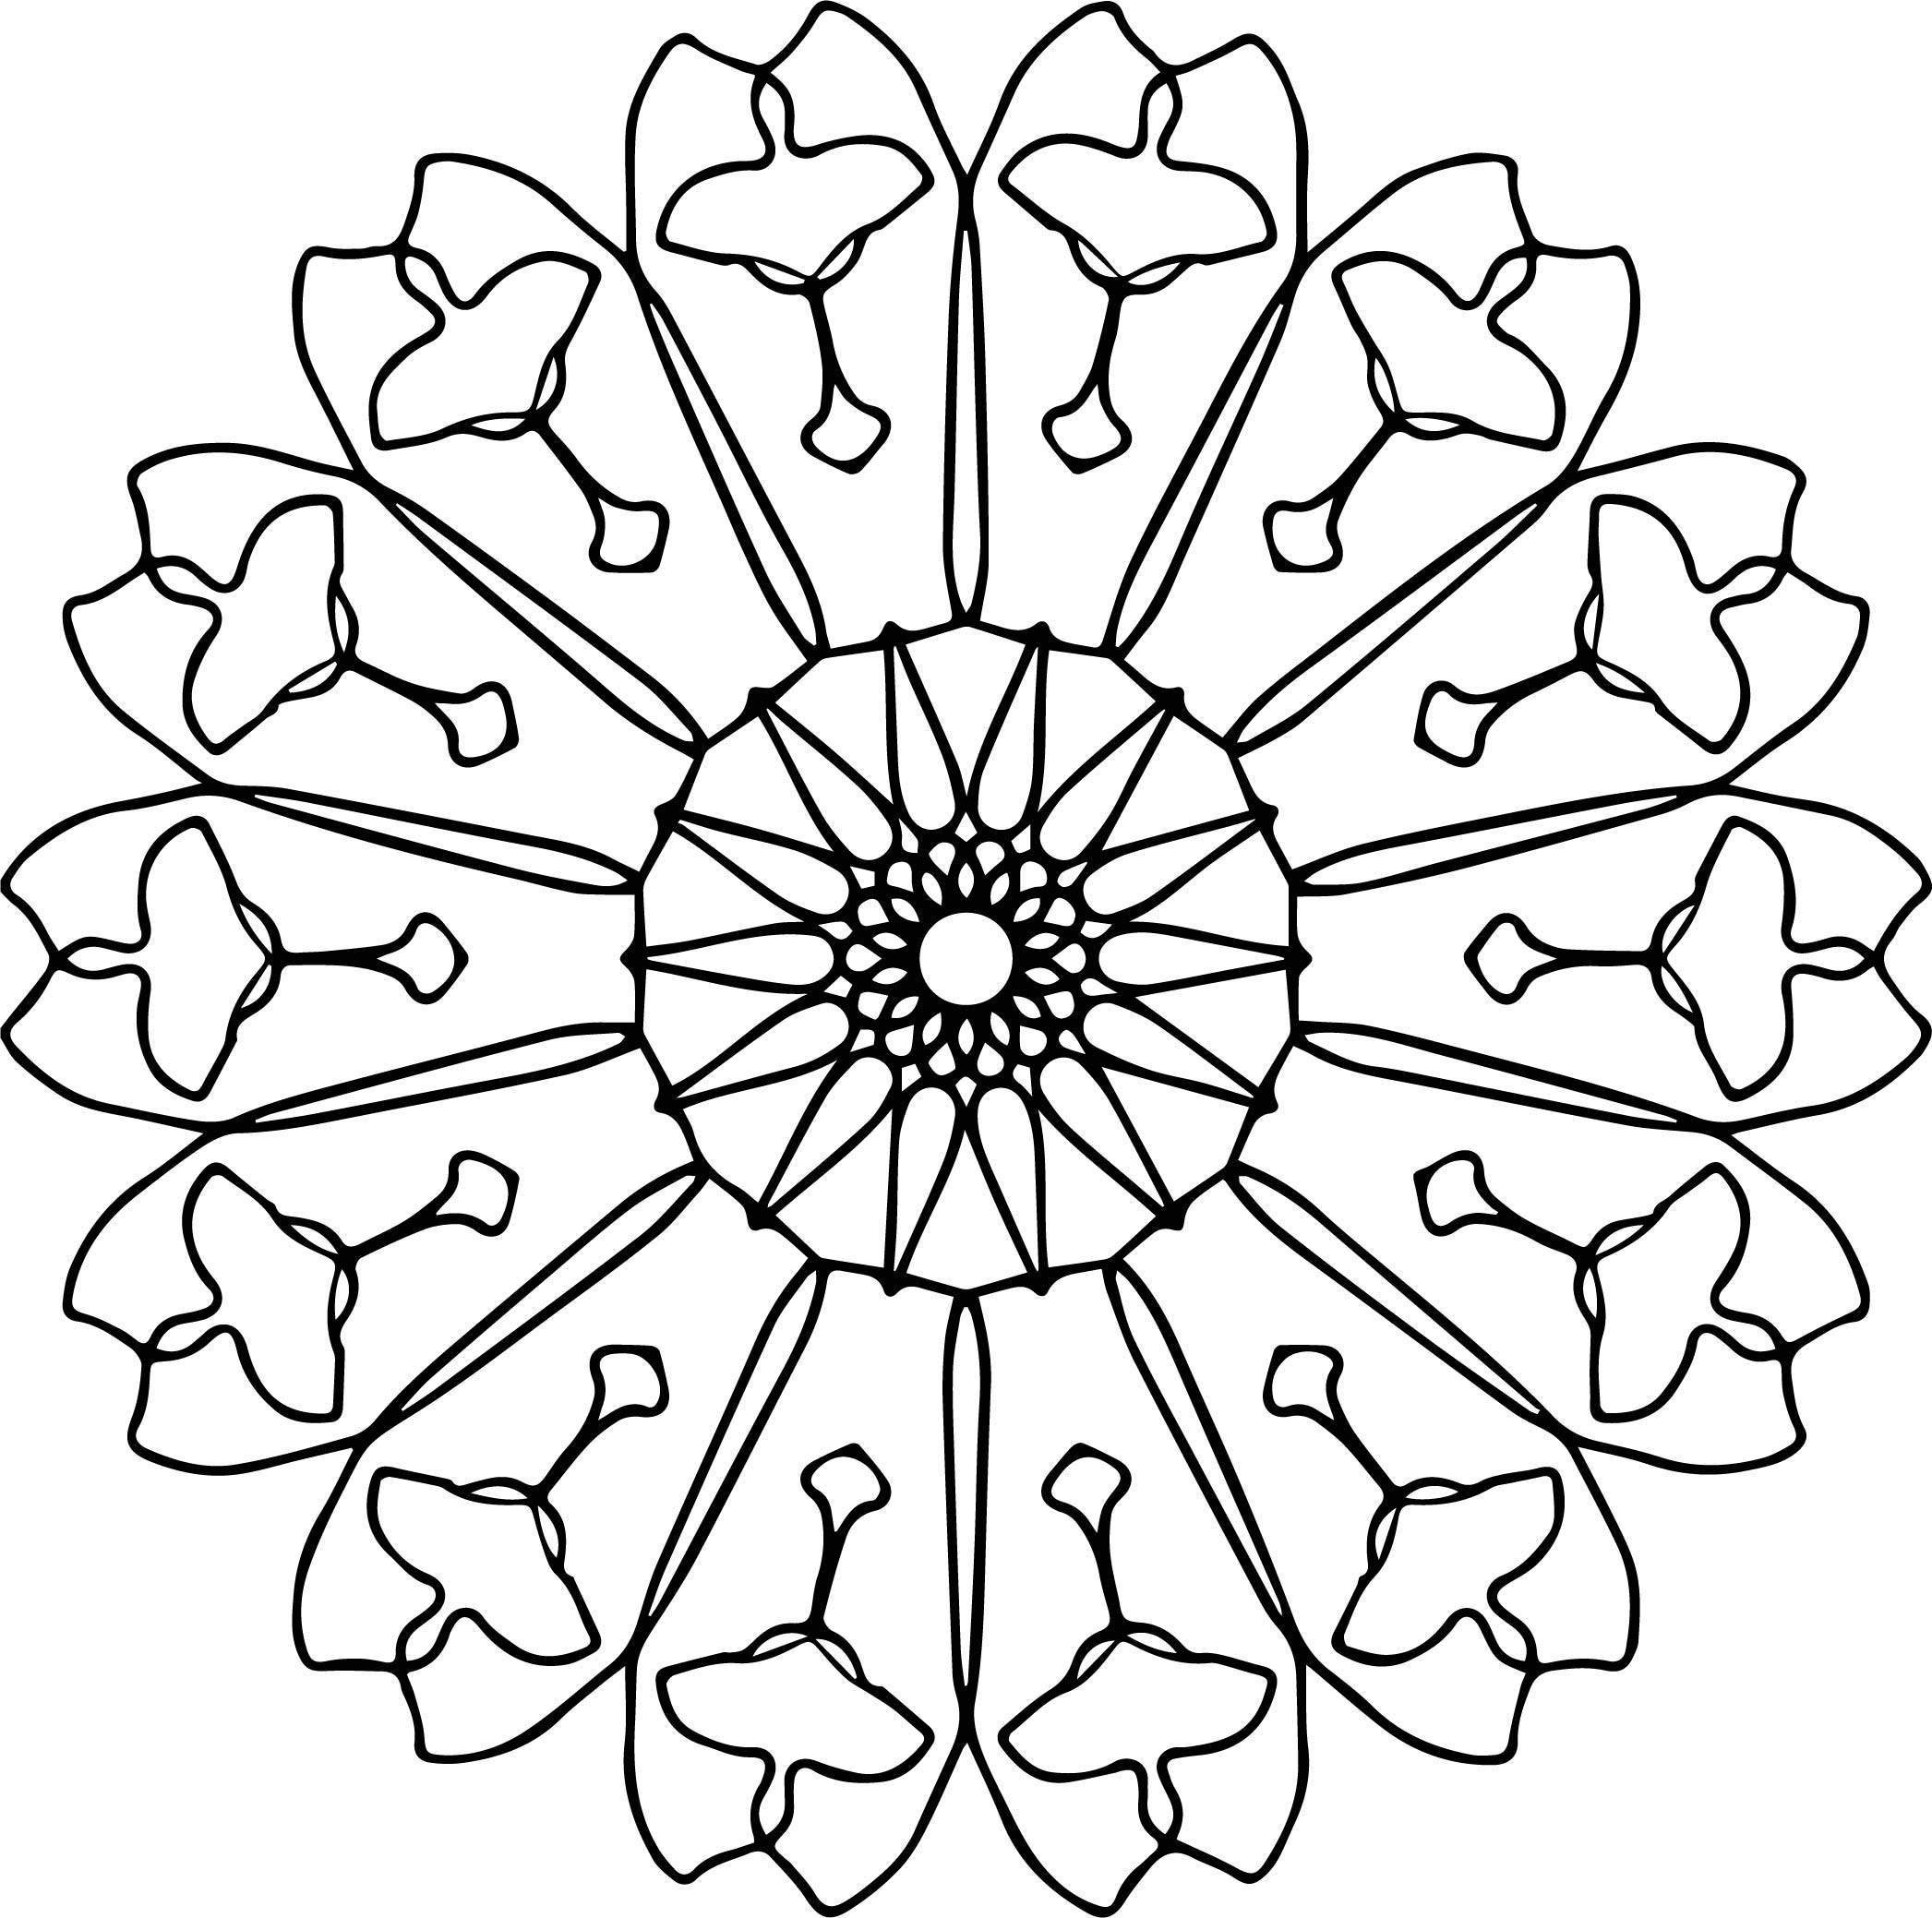 Download Mandala Coloring Page